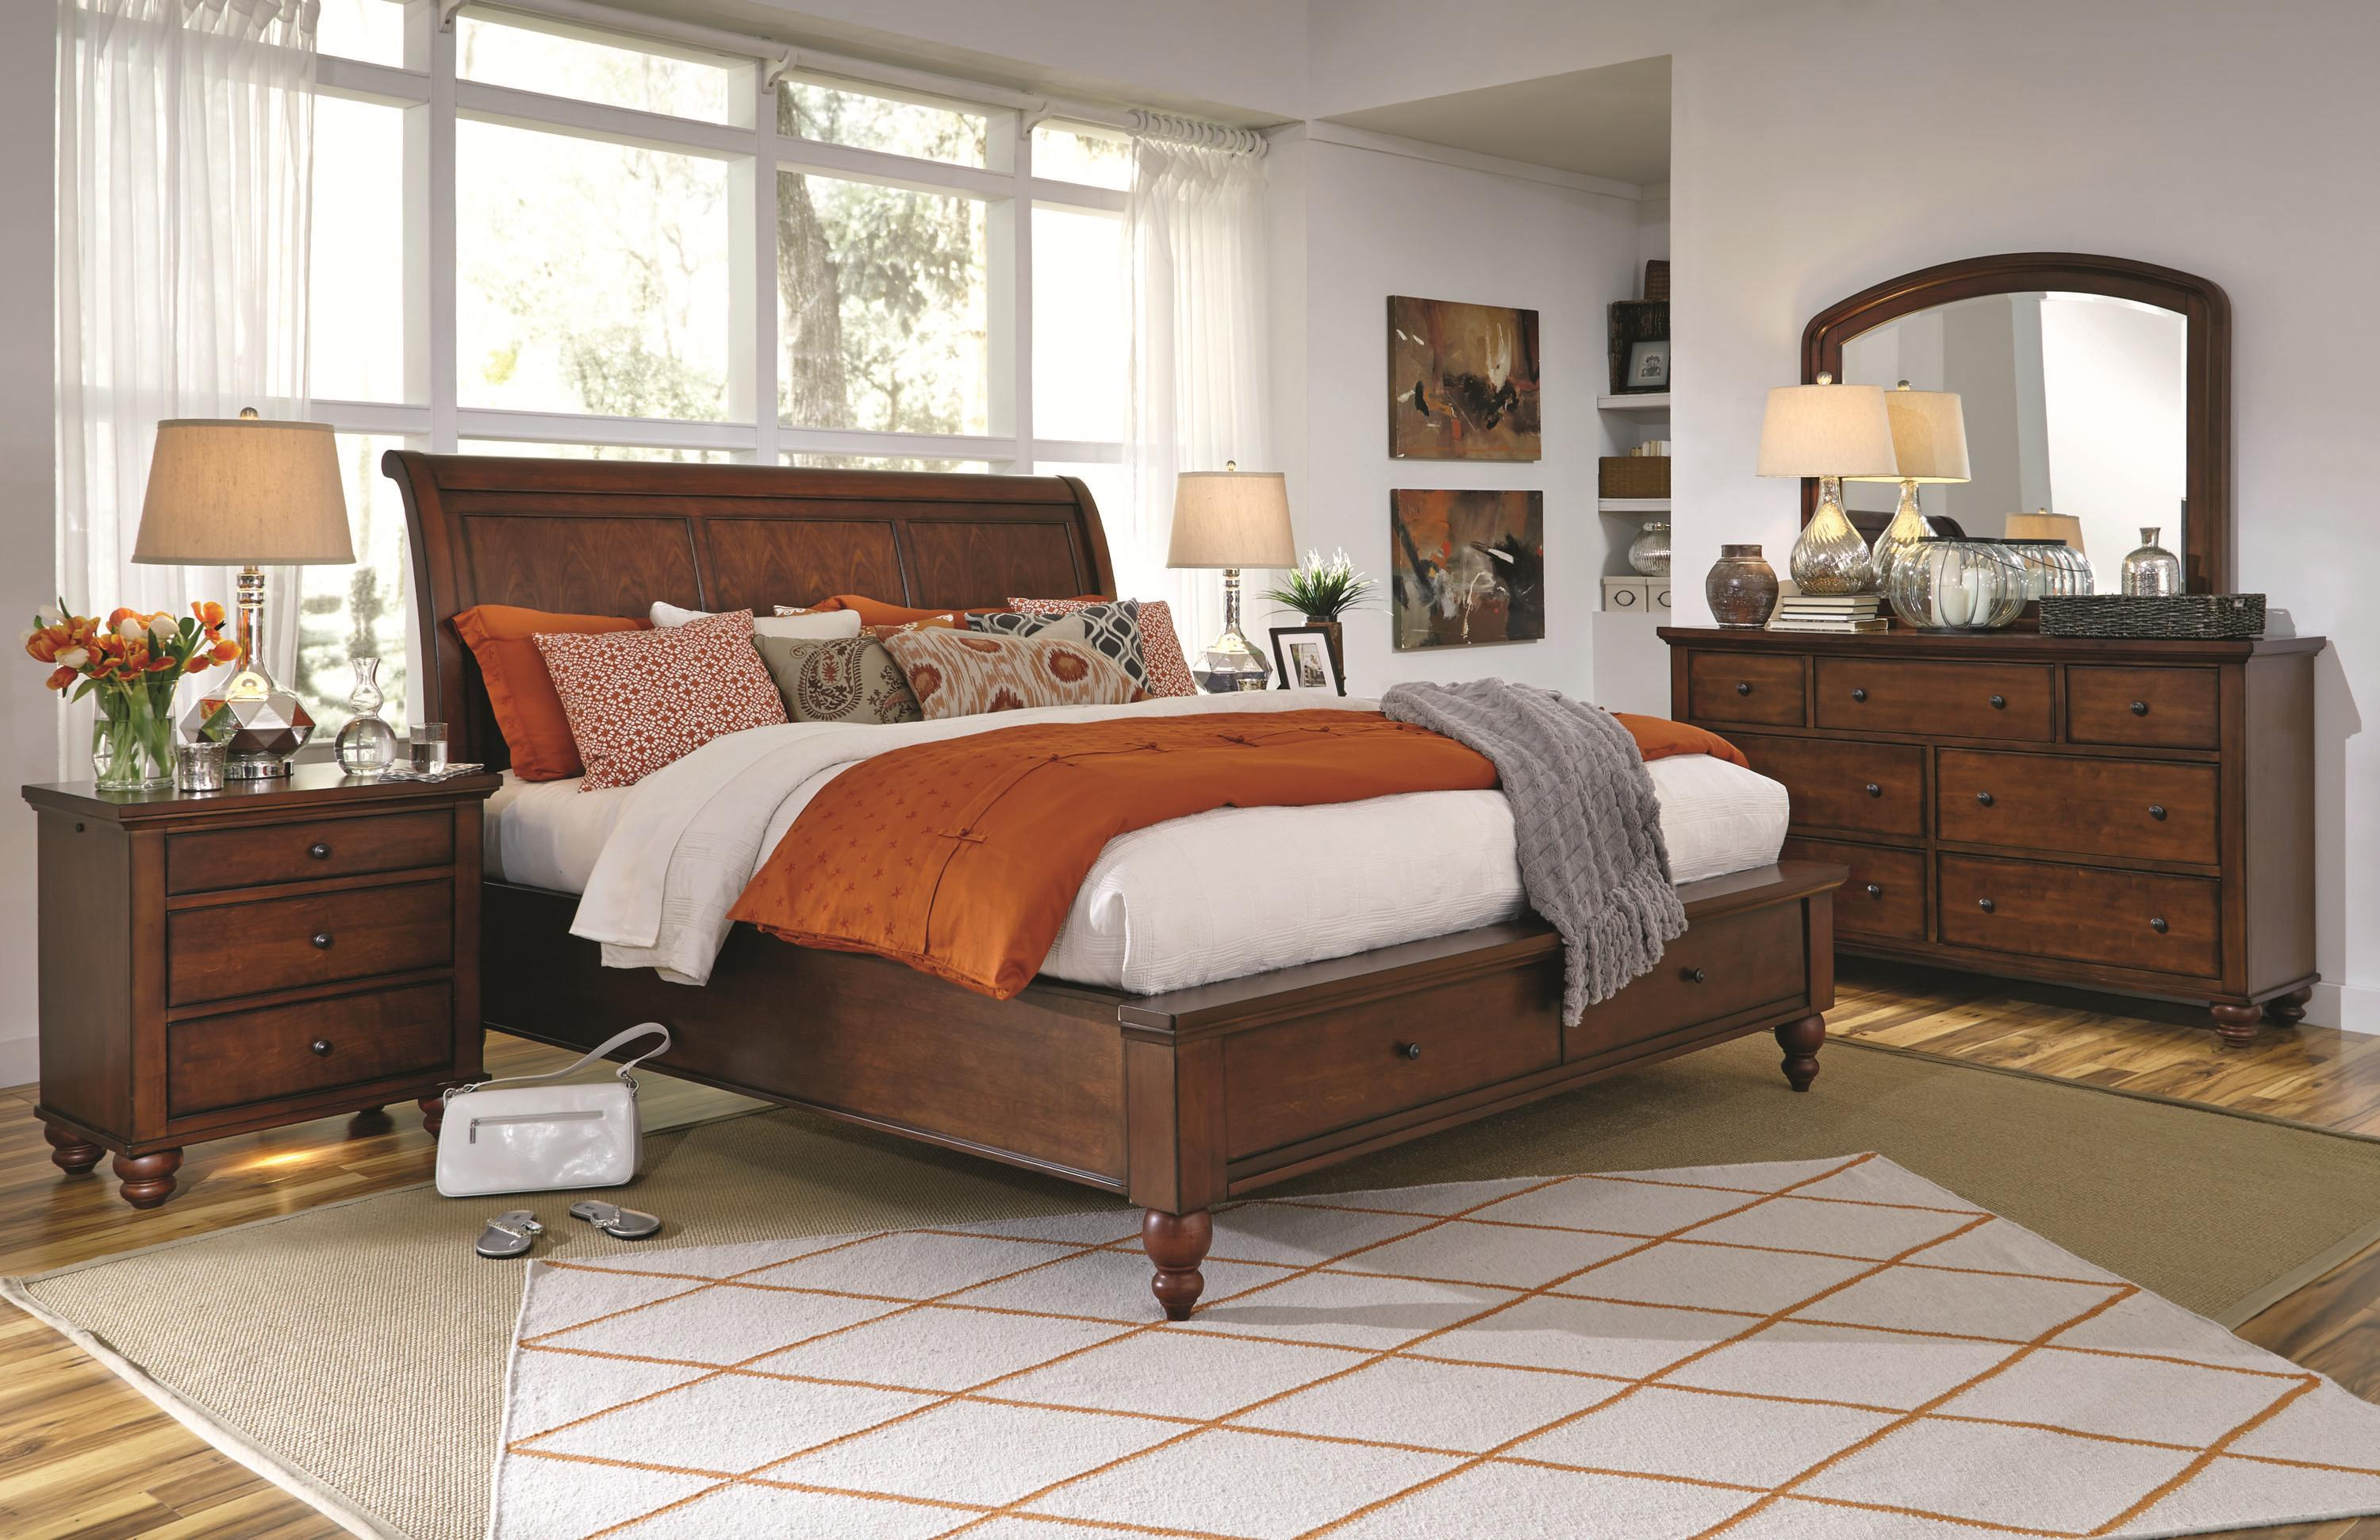 Bed In A Drawer Kingsize Bed With Sleigh Headboard & Drawer Storage Footboard.